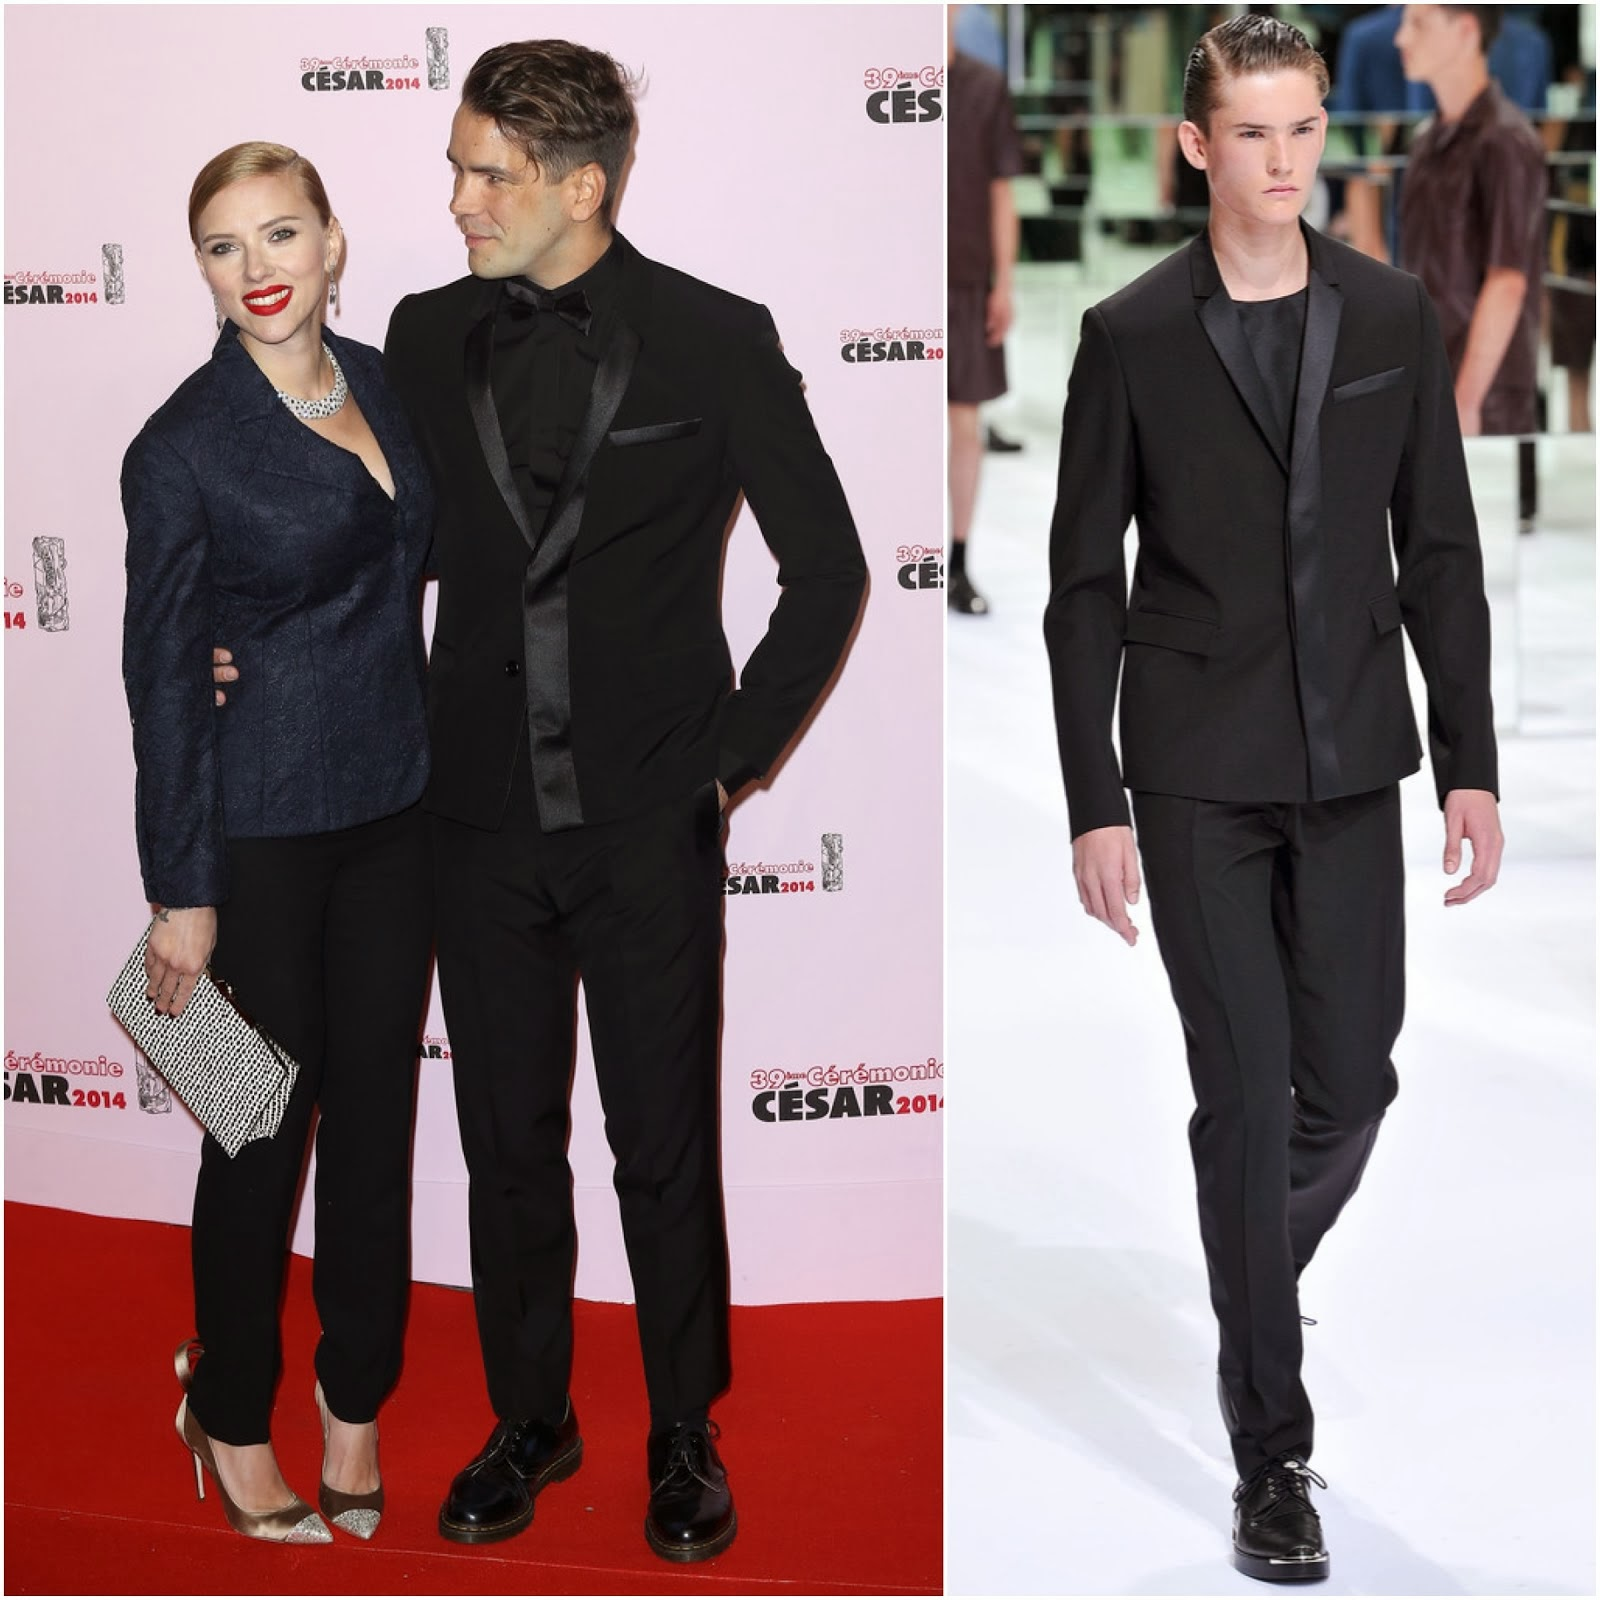 Romain Dauriac in Dior Homme - Cesar Film Awards 2014